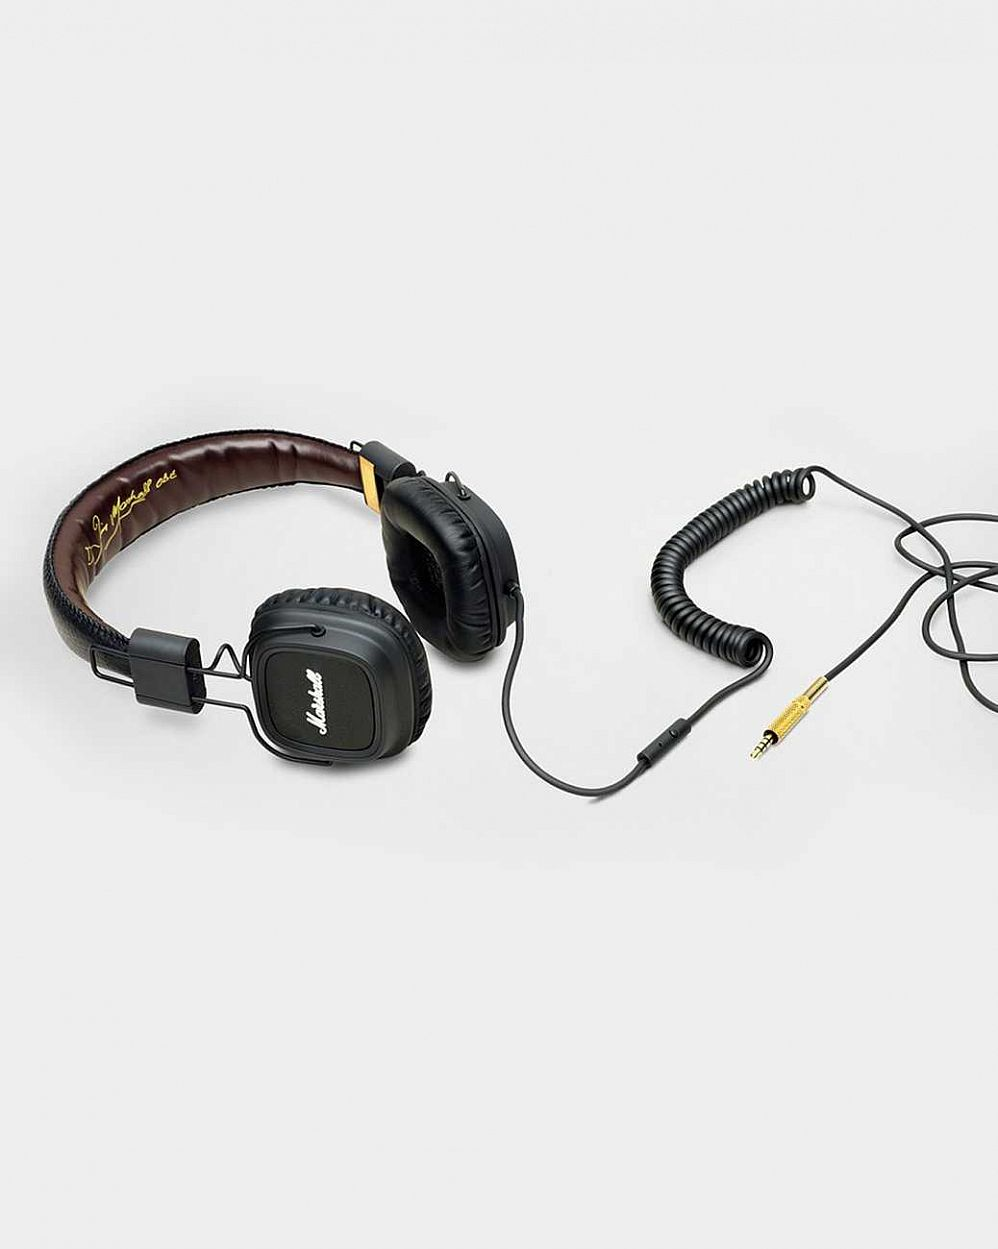 Наушники Marshall Headphones (major) Black Foto в розницу